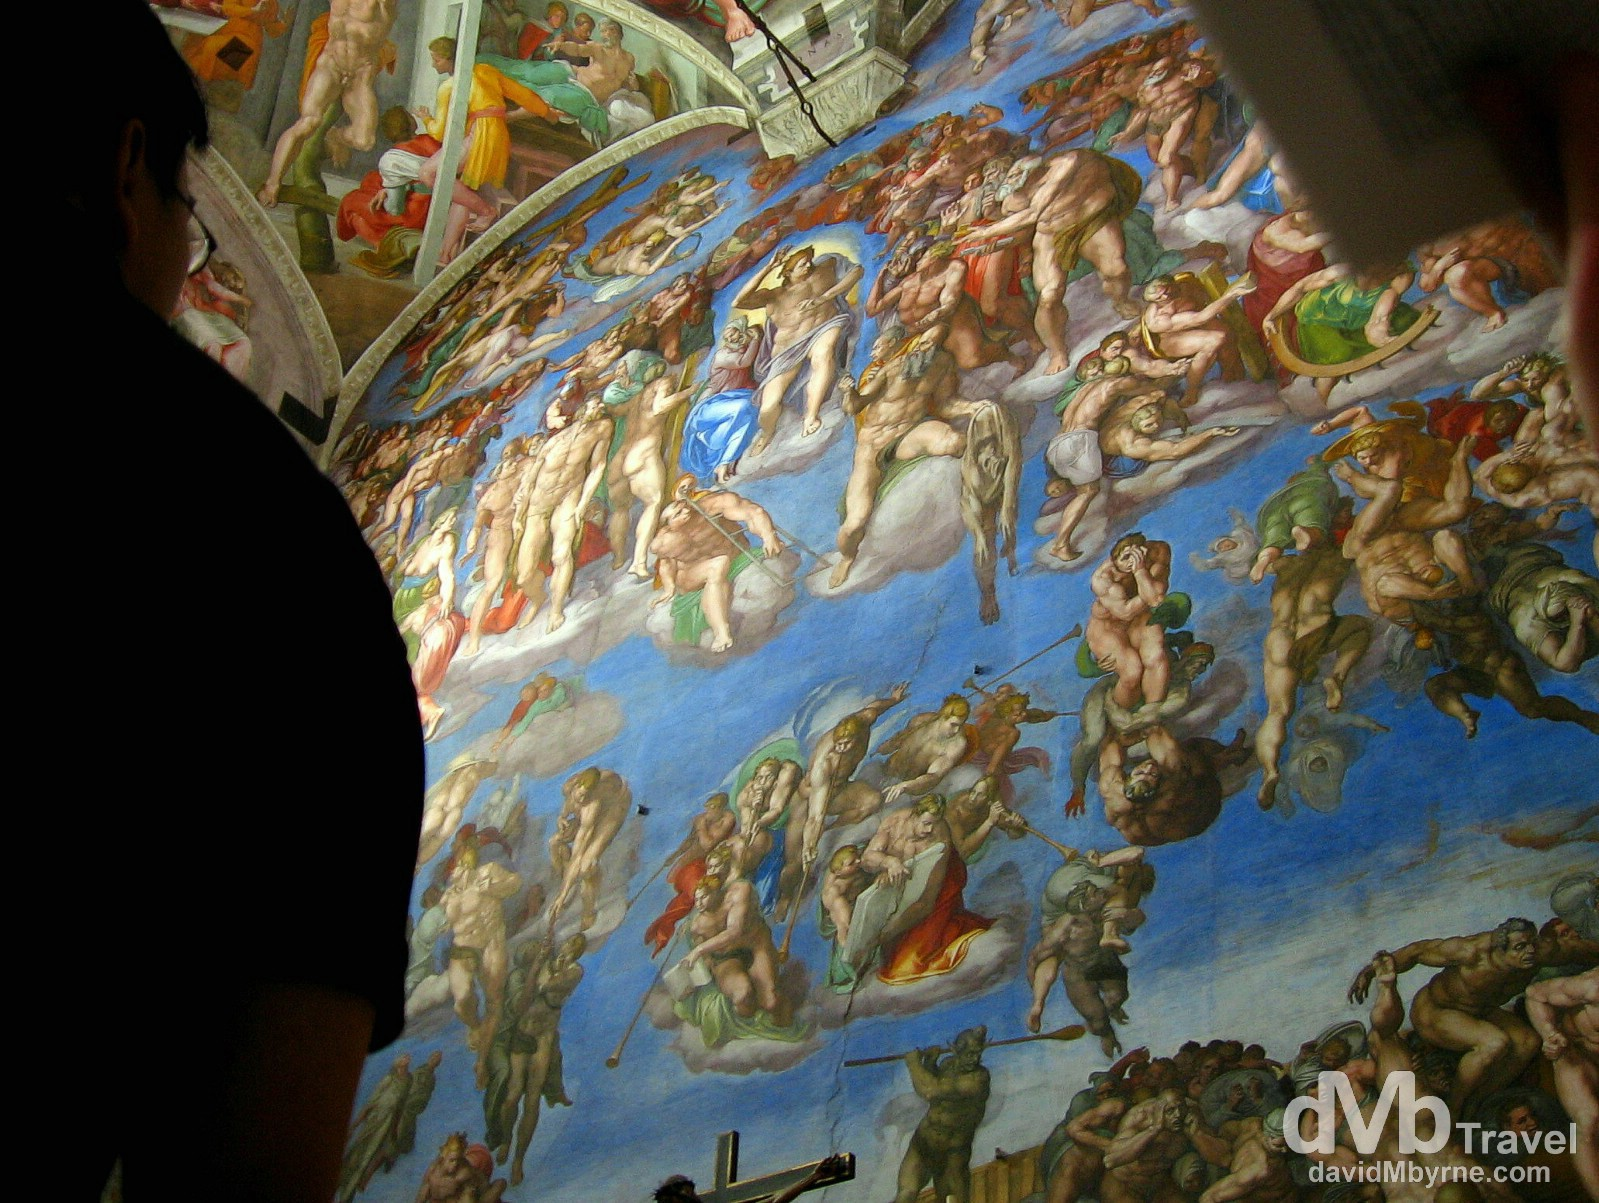 Michelangelo's The Last Judgement in the Sistine Chapel, Vatican City. September 3rd, 2007.